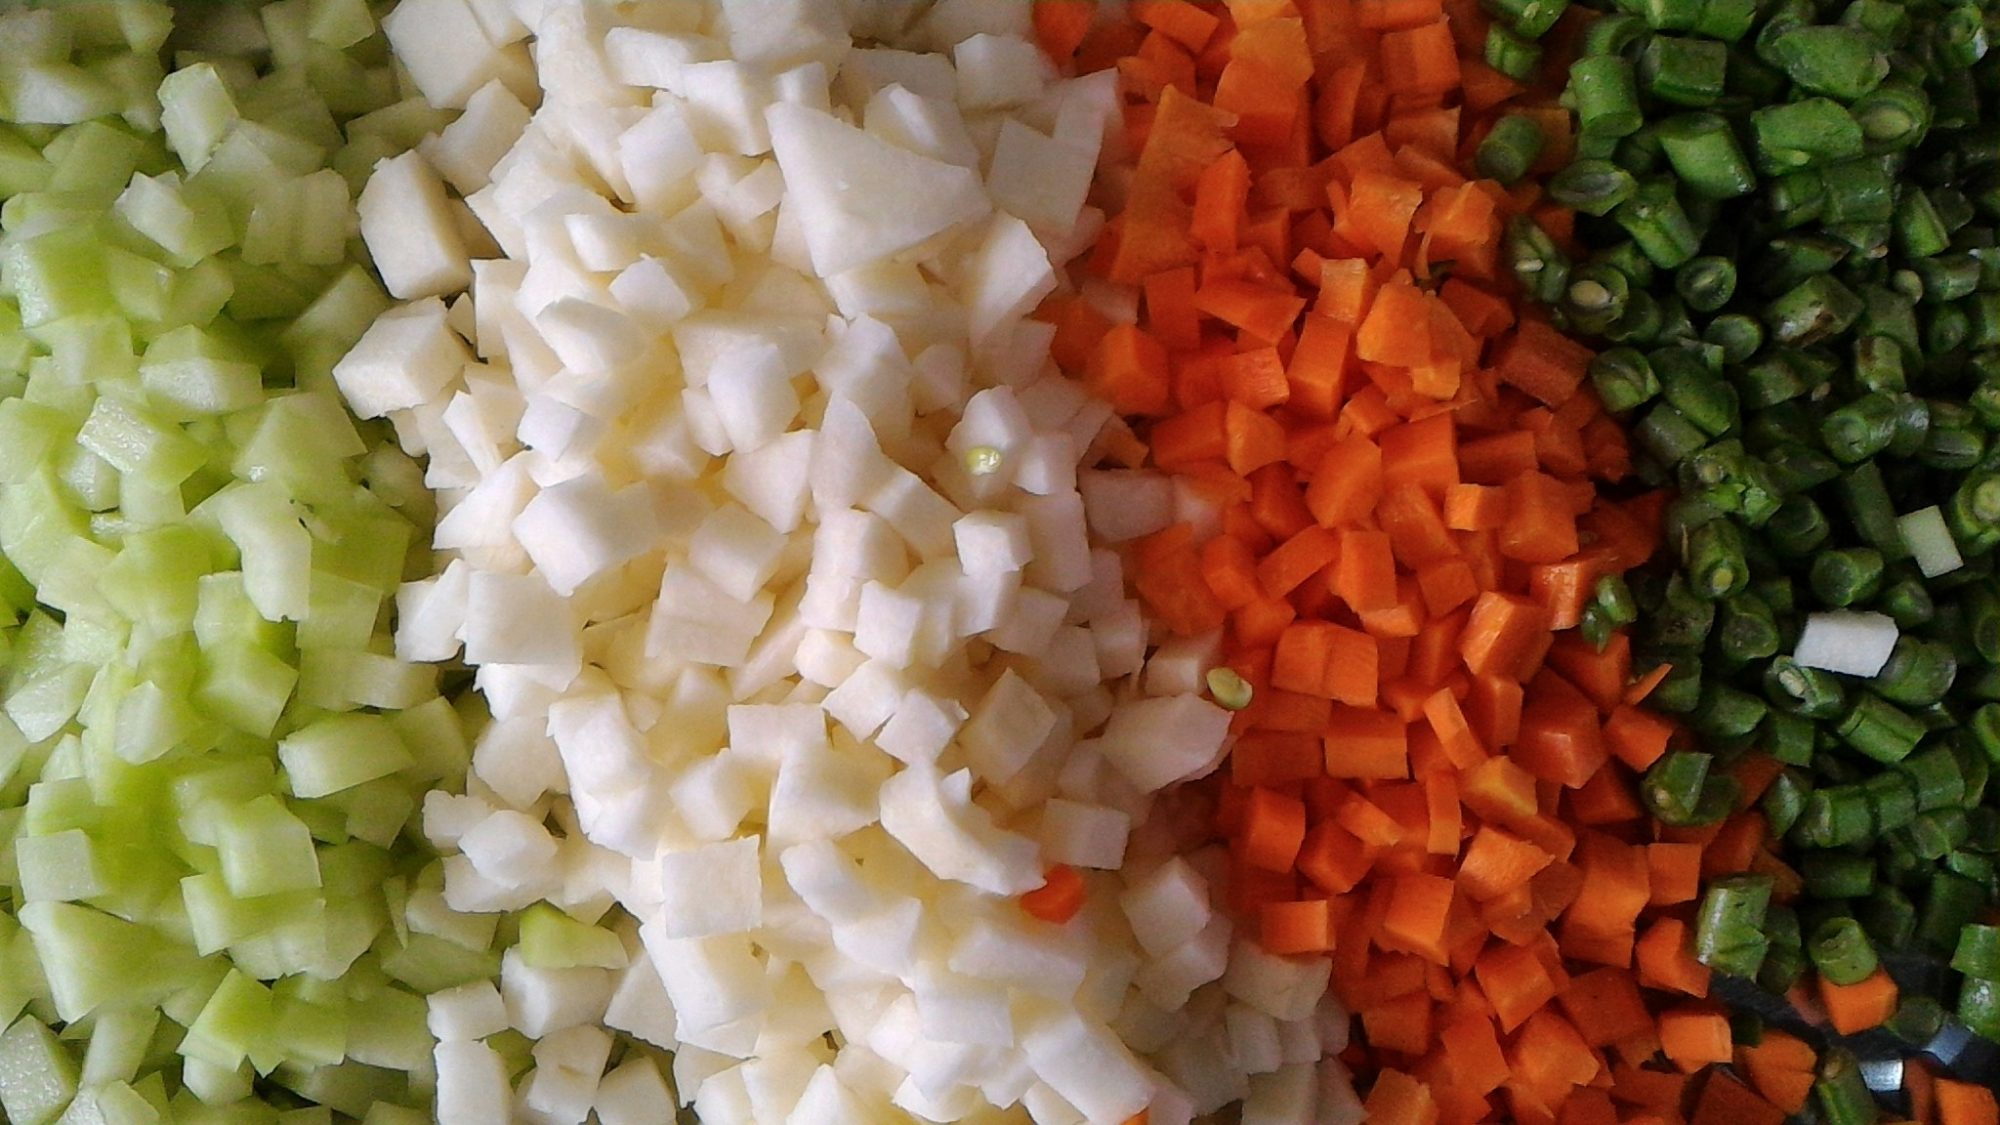 Chopped Vegetables Listeria Recall